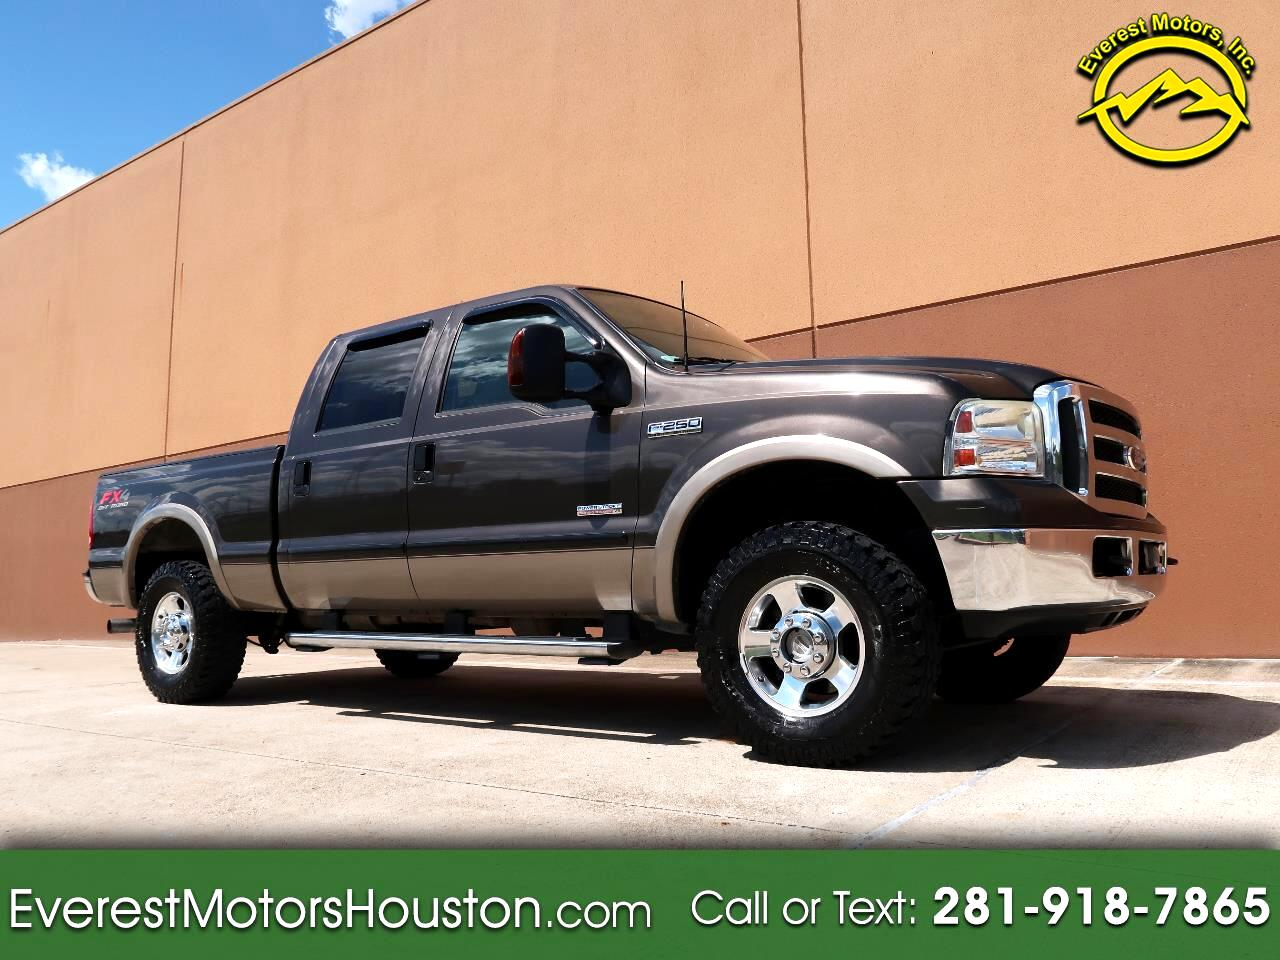 2005 Ford F-250 SD LARIAT CREW CAB SHORT BED 4WD DIESEL